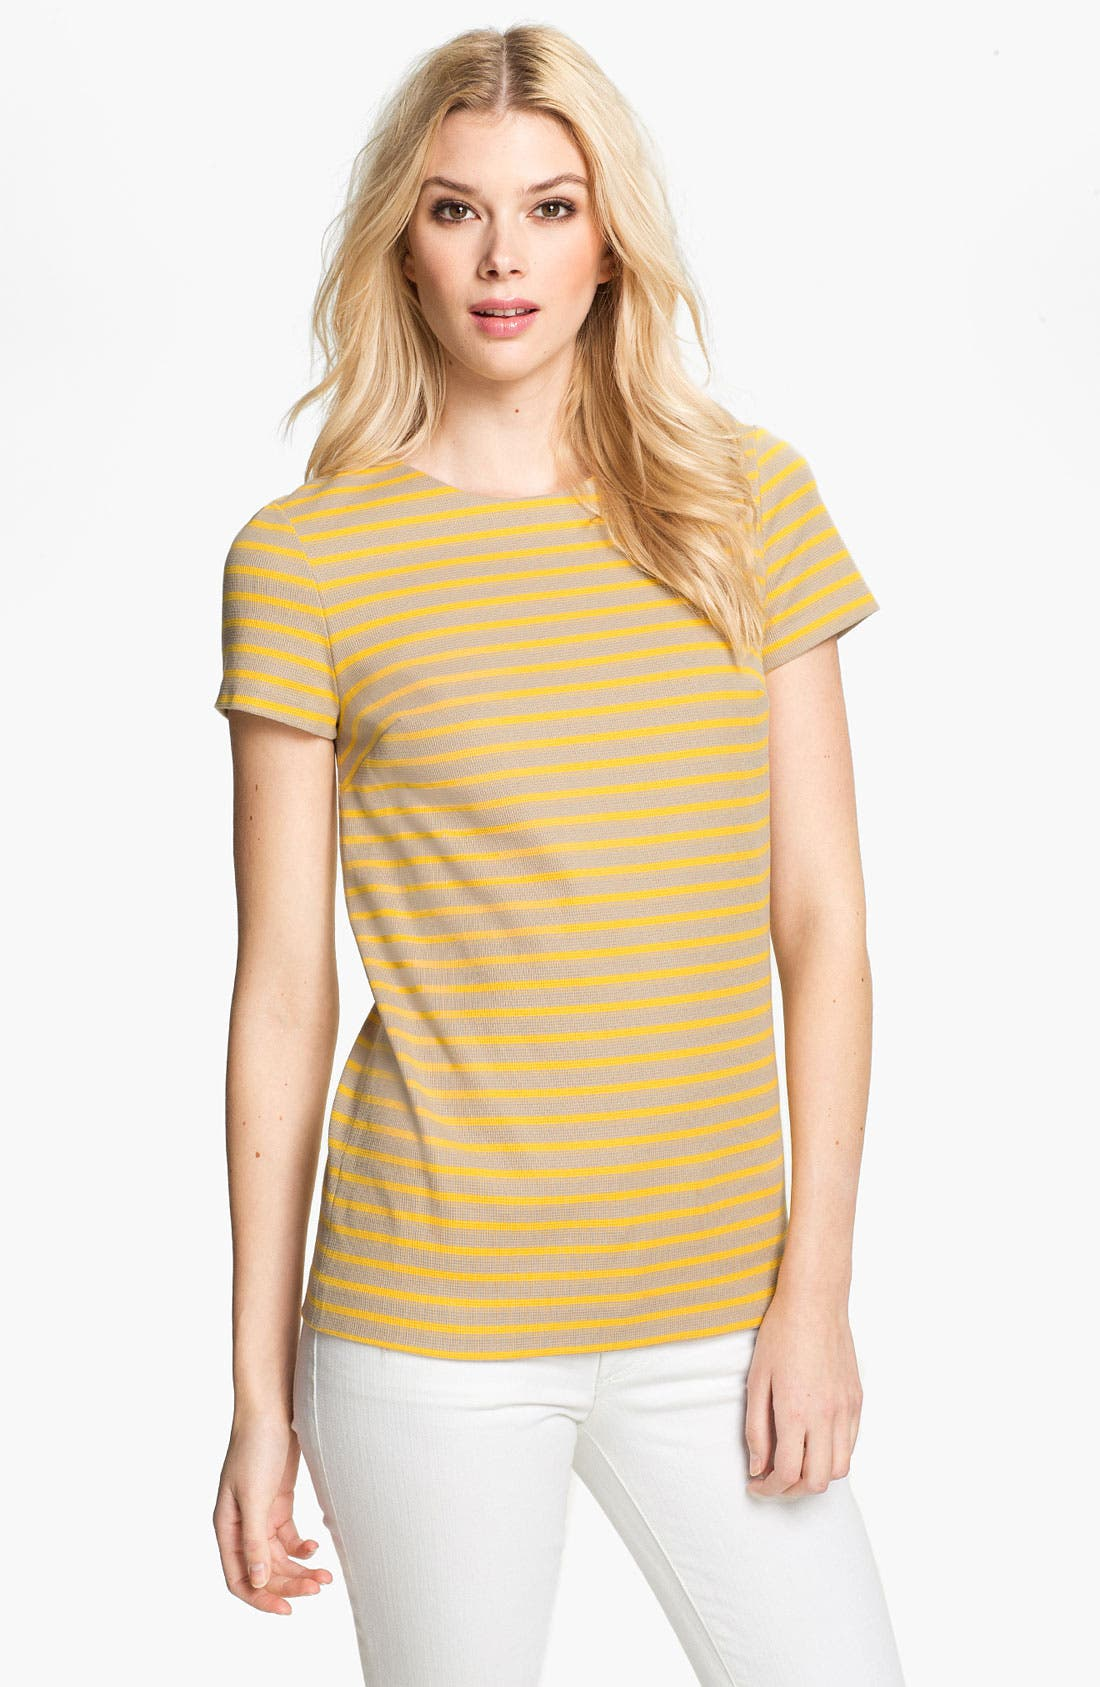 Alternate Image 1 Selected - Tory Burch 'Emmy' Tee